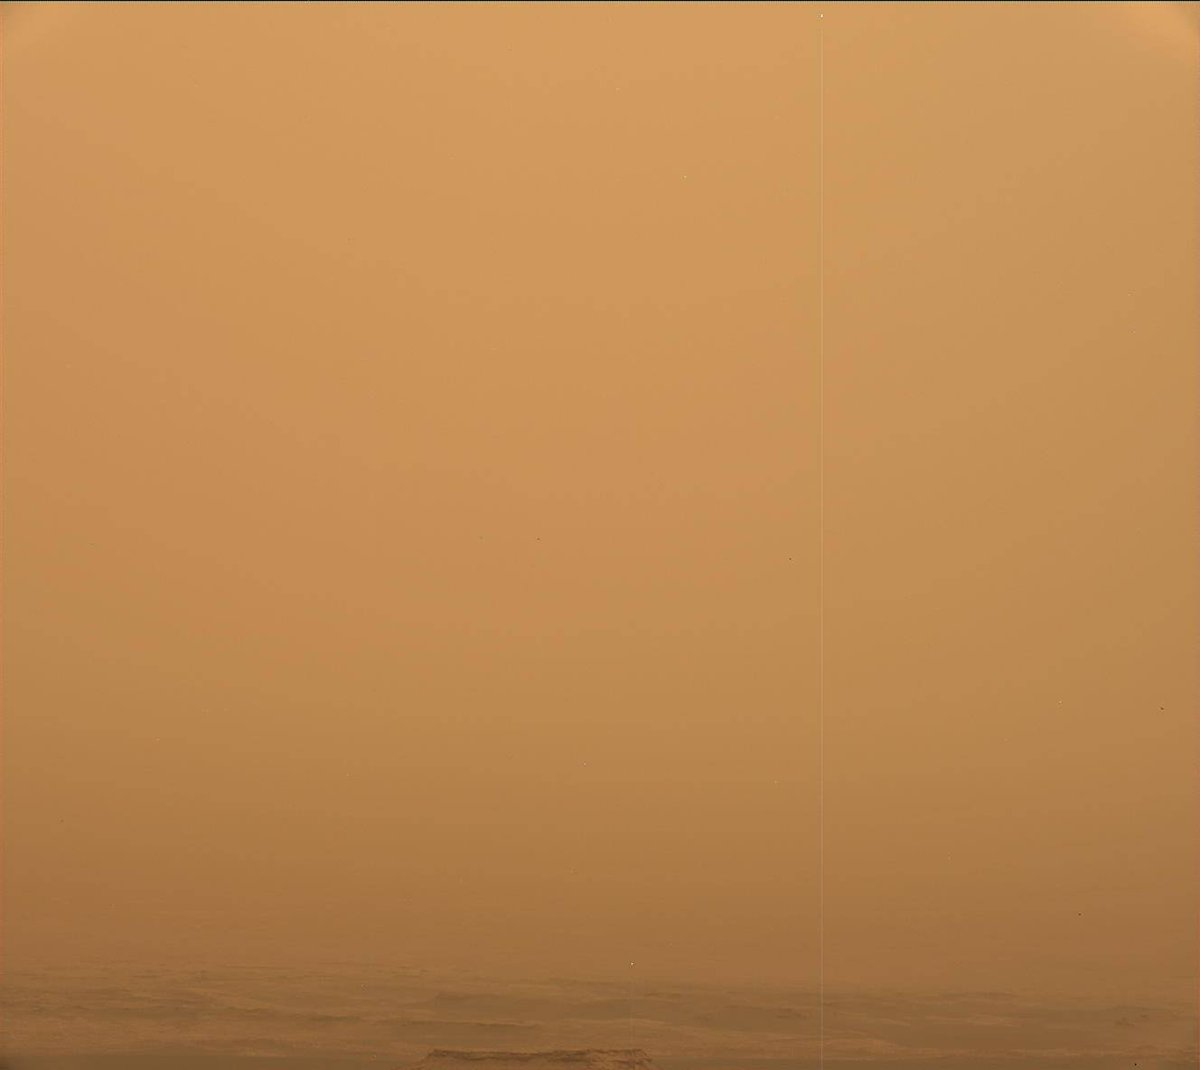 You're a survivor, you're not gonna give up.  Hang in there, Oppy! Here's how the @MarsRovers team will try to reach her now that this dust storm is starting to calm down: https://t.co/BwDJI5PYSL